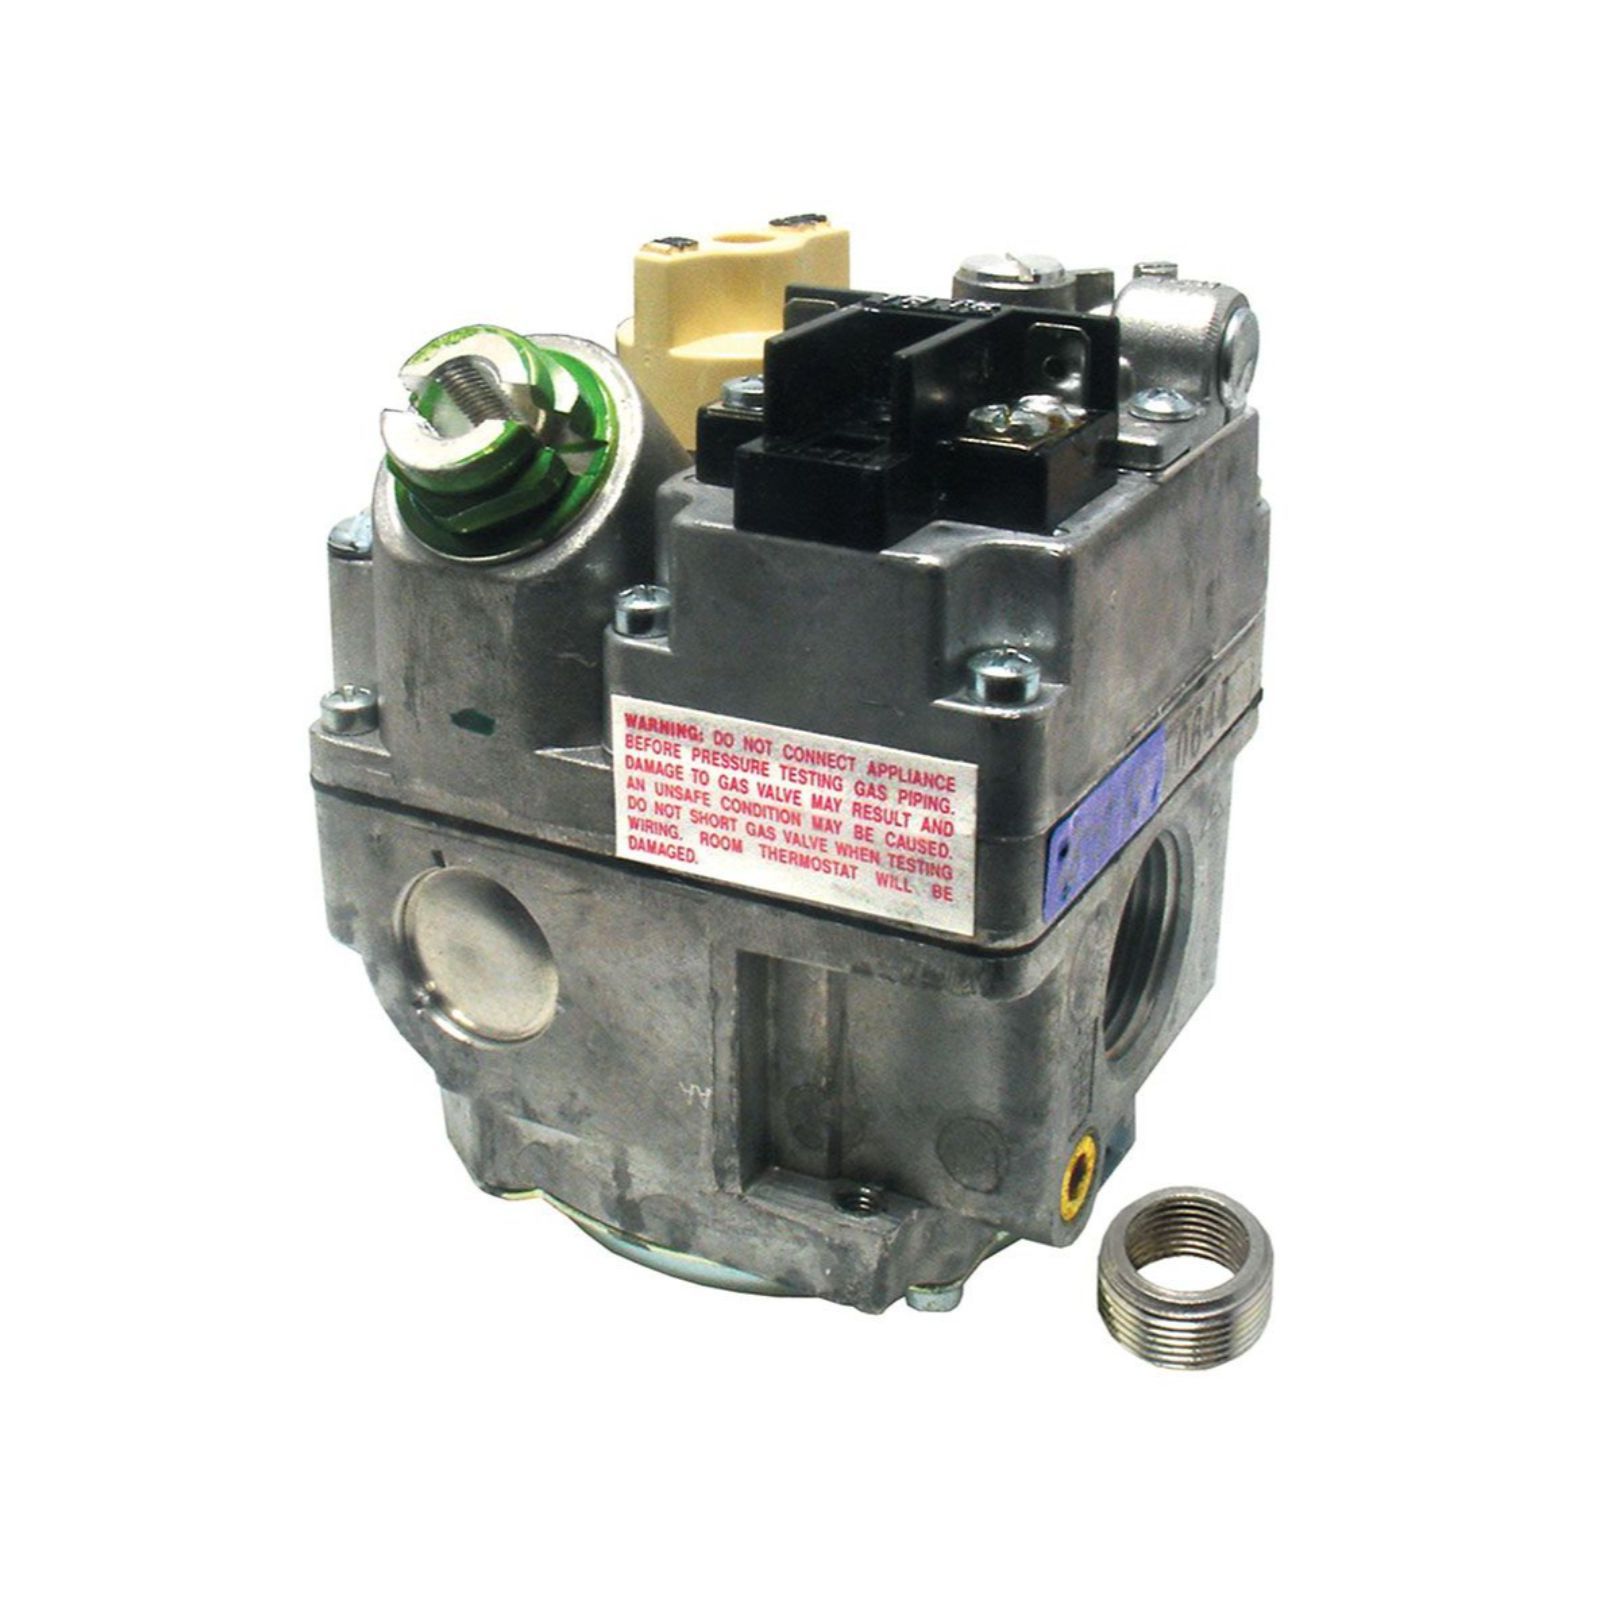 Invensys Controls 60-18556-86 - Gas Valve